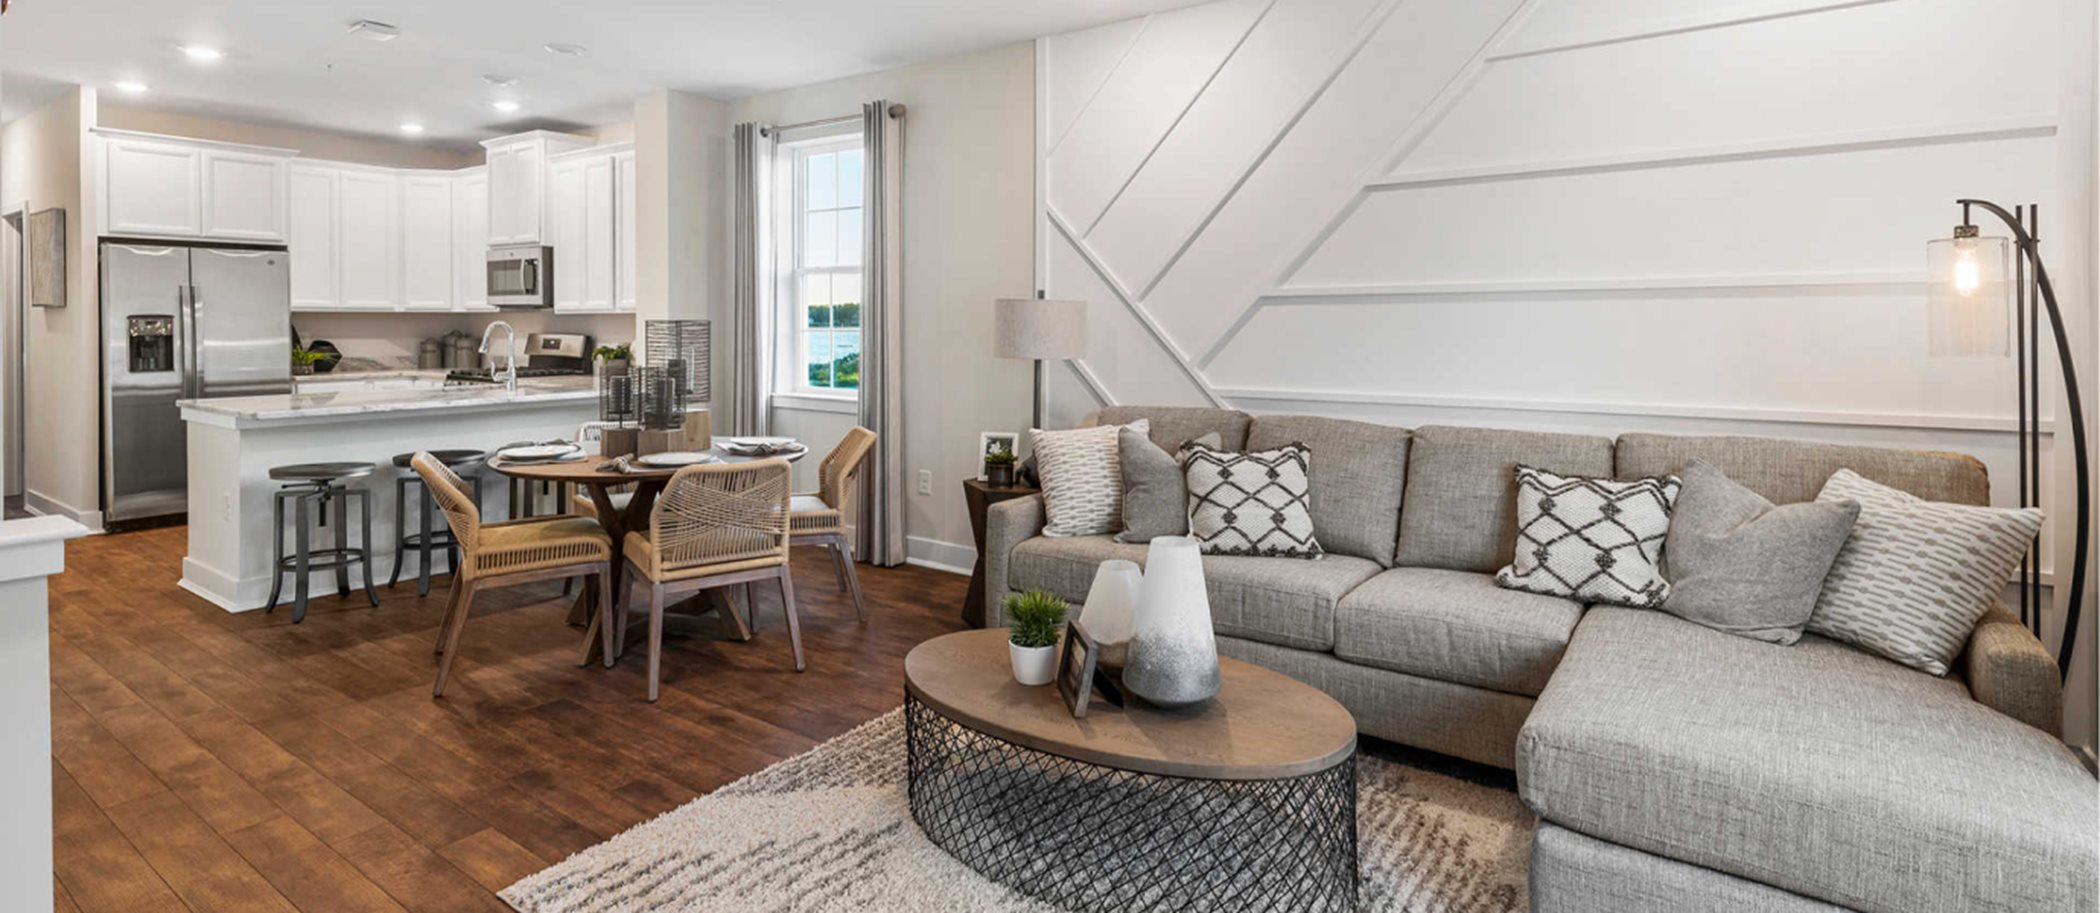 Waterside-By-Lennar Waterside Contemporary Towns Easton Room